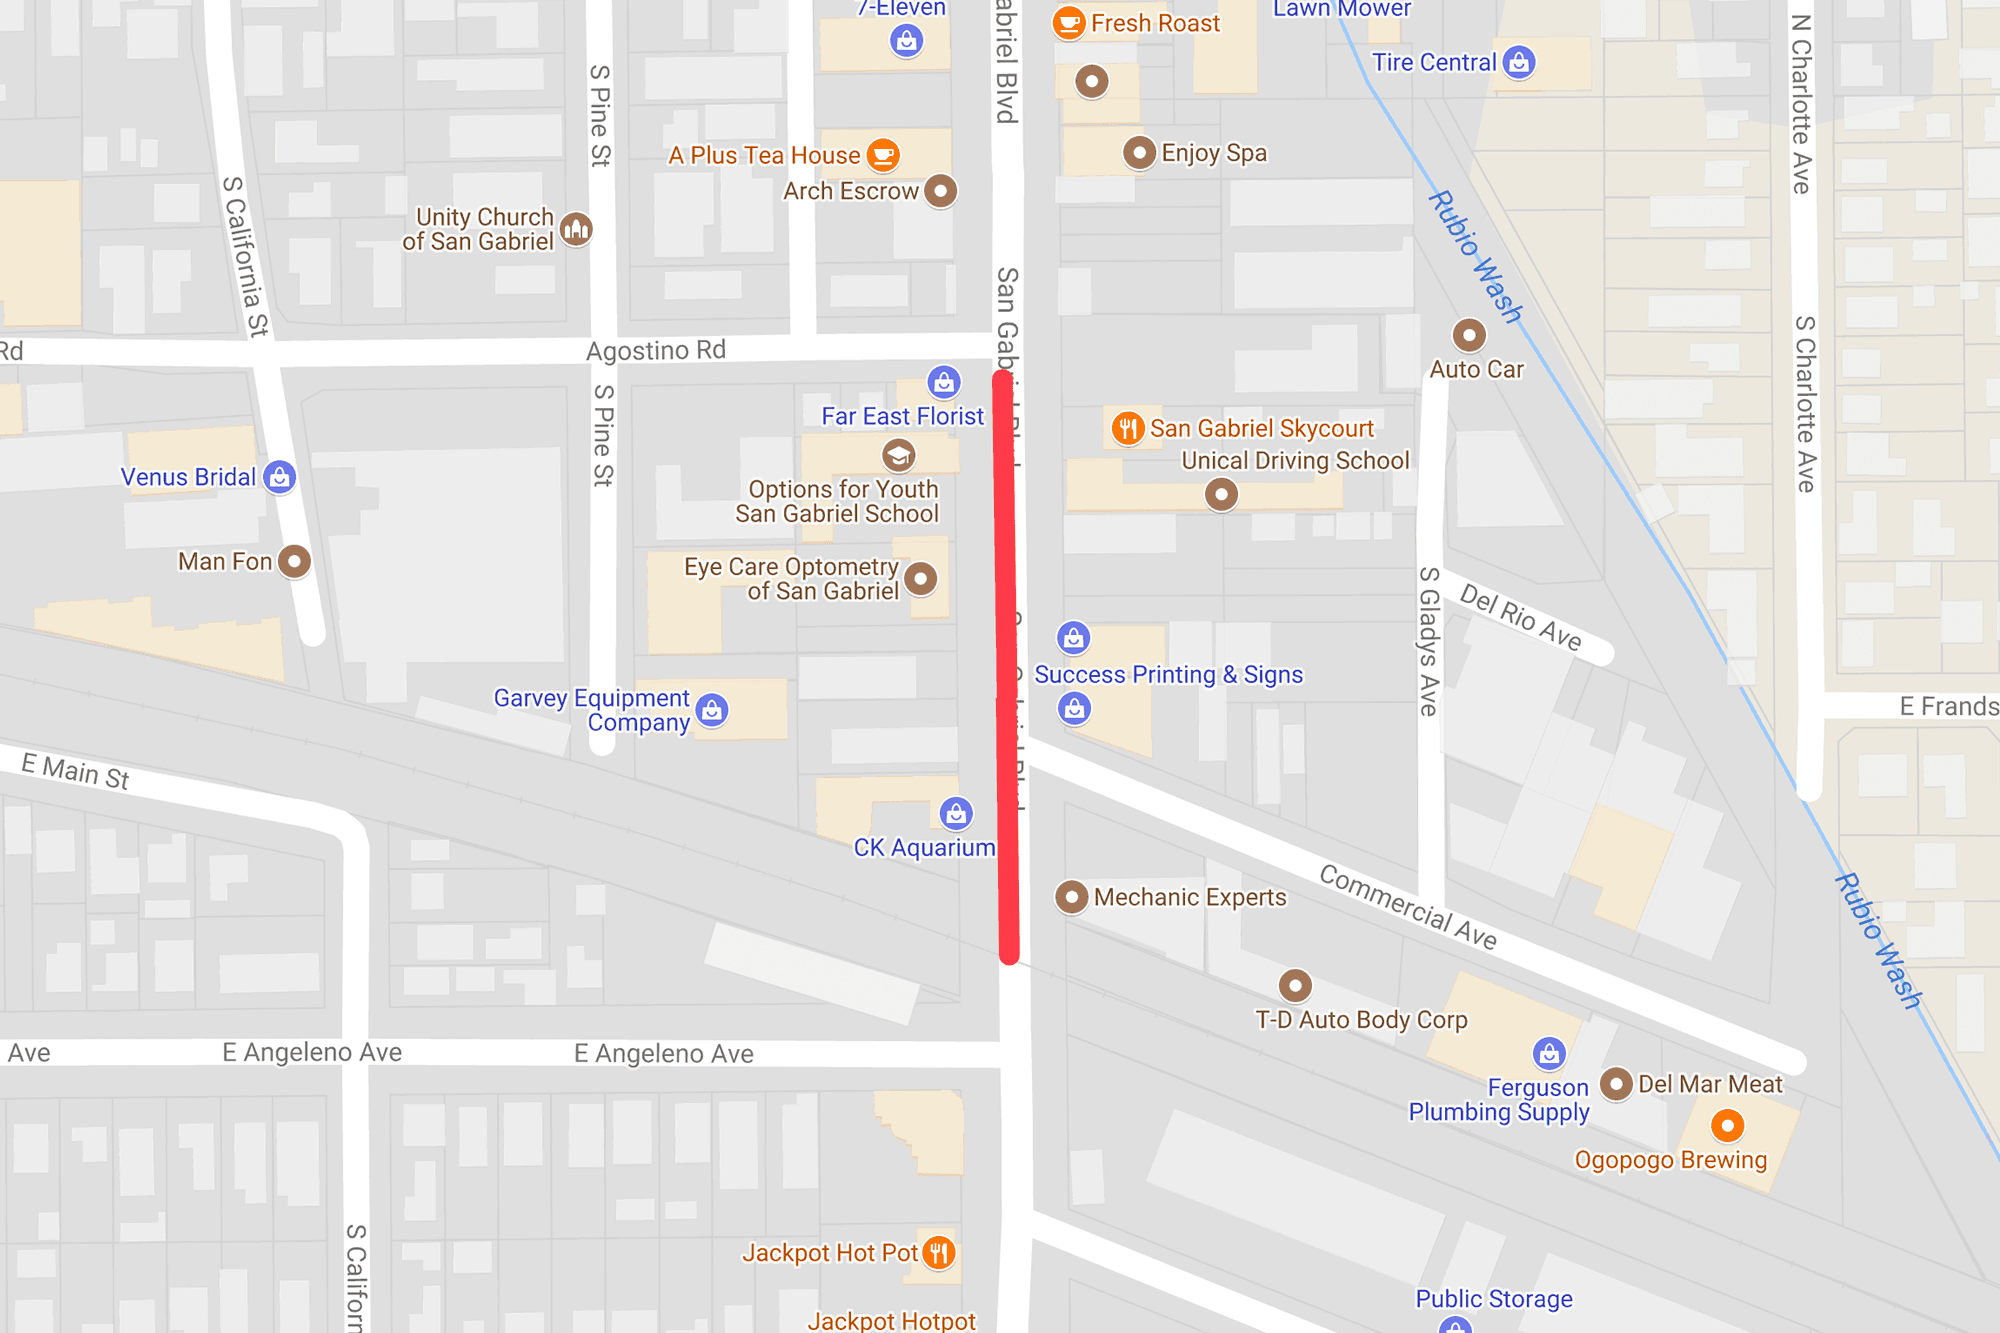 Construction on San Gabriel Blvd from Agostino Rd to trench